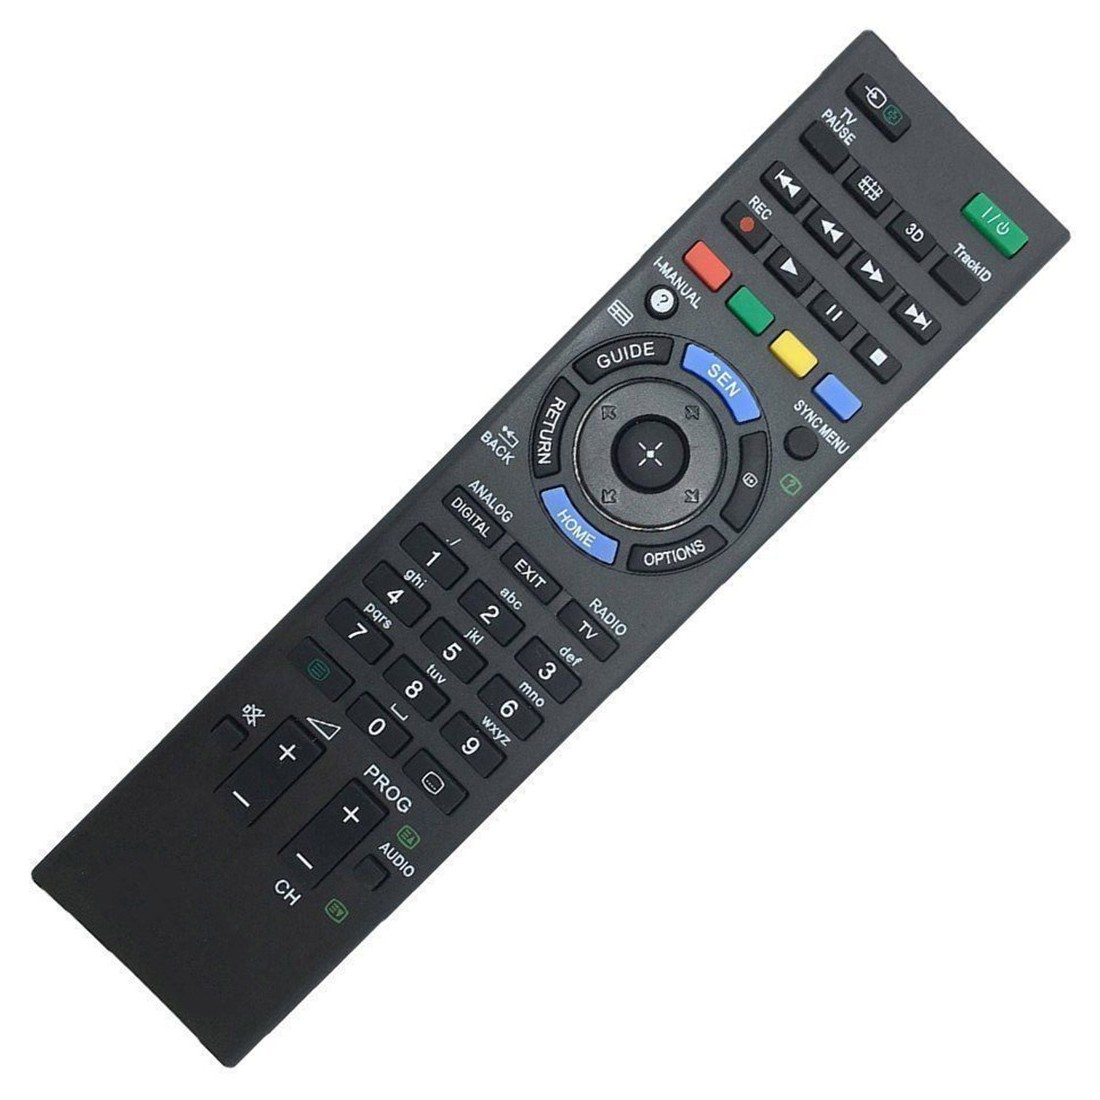 Sony Lcd Tv Remote